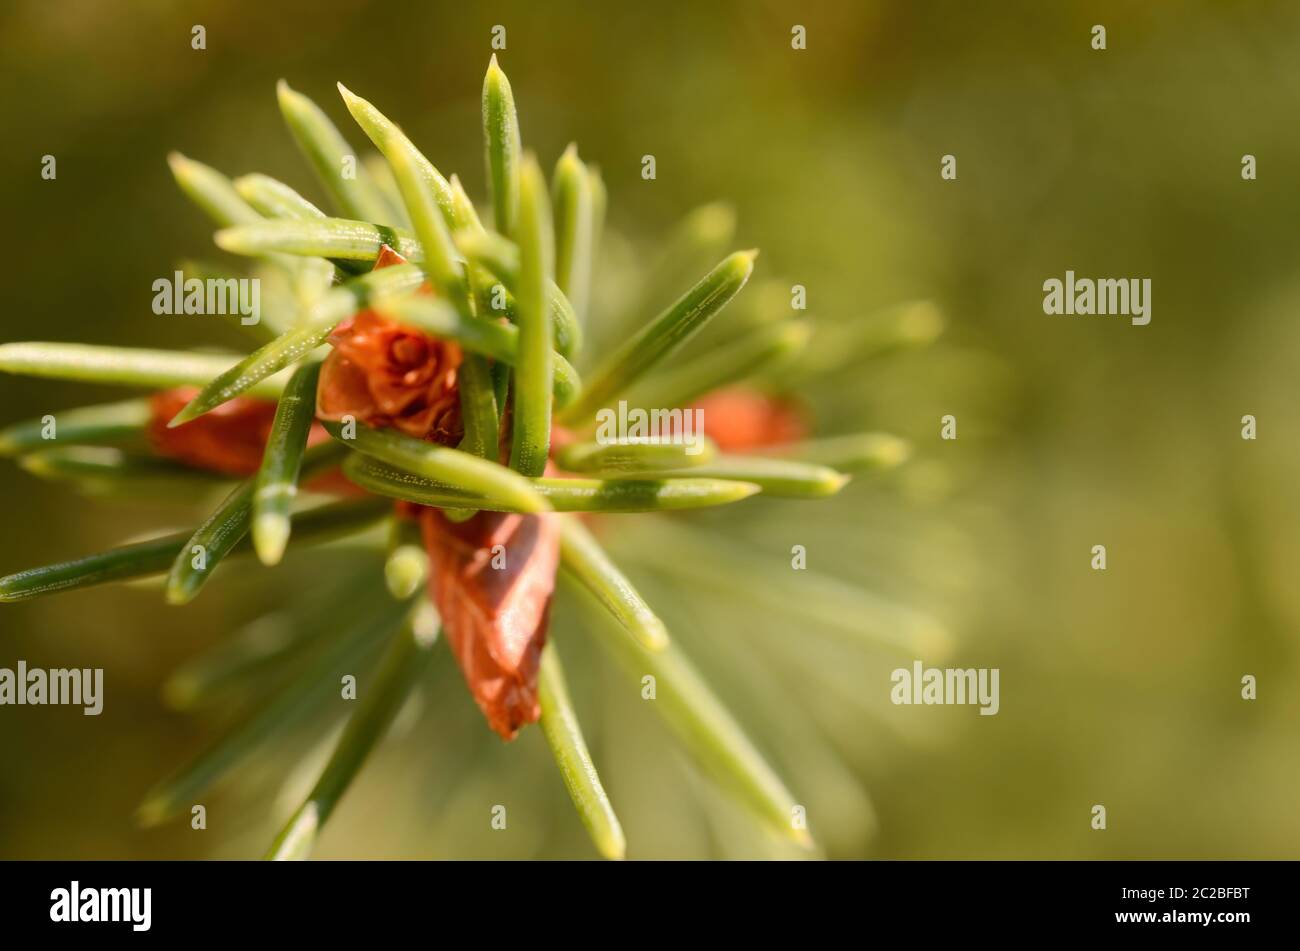 Closeup green twig of coniferous tree with tiny cones on blurred background of nature on sunny spring day Stock Photo